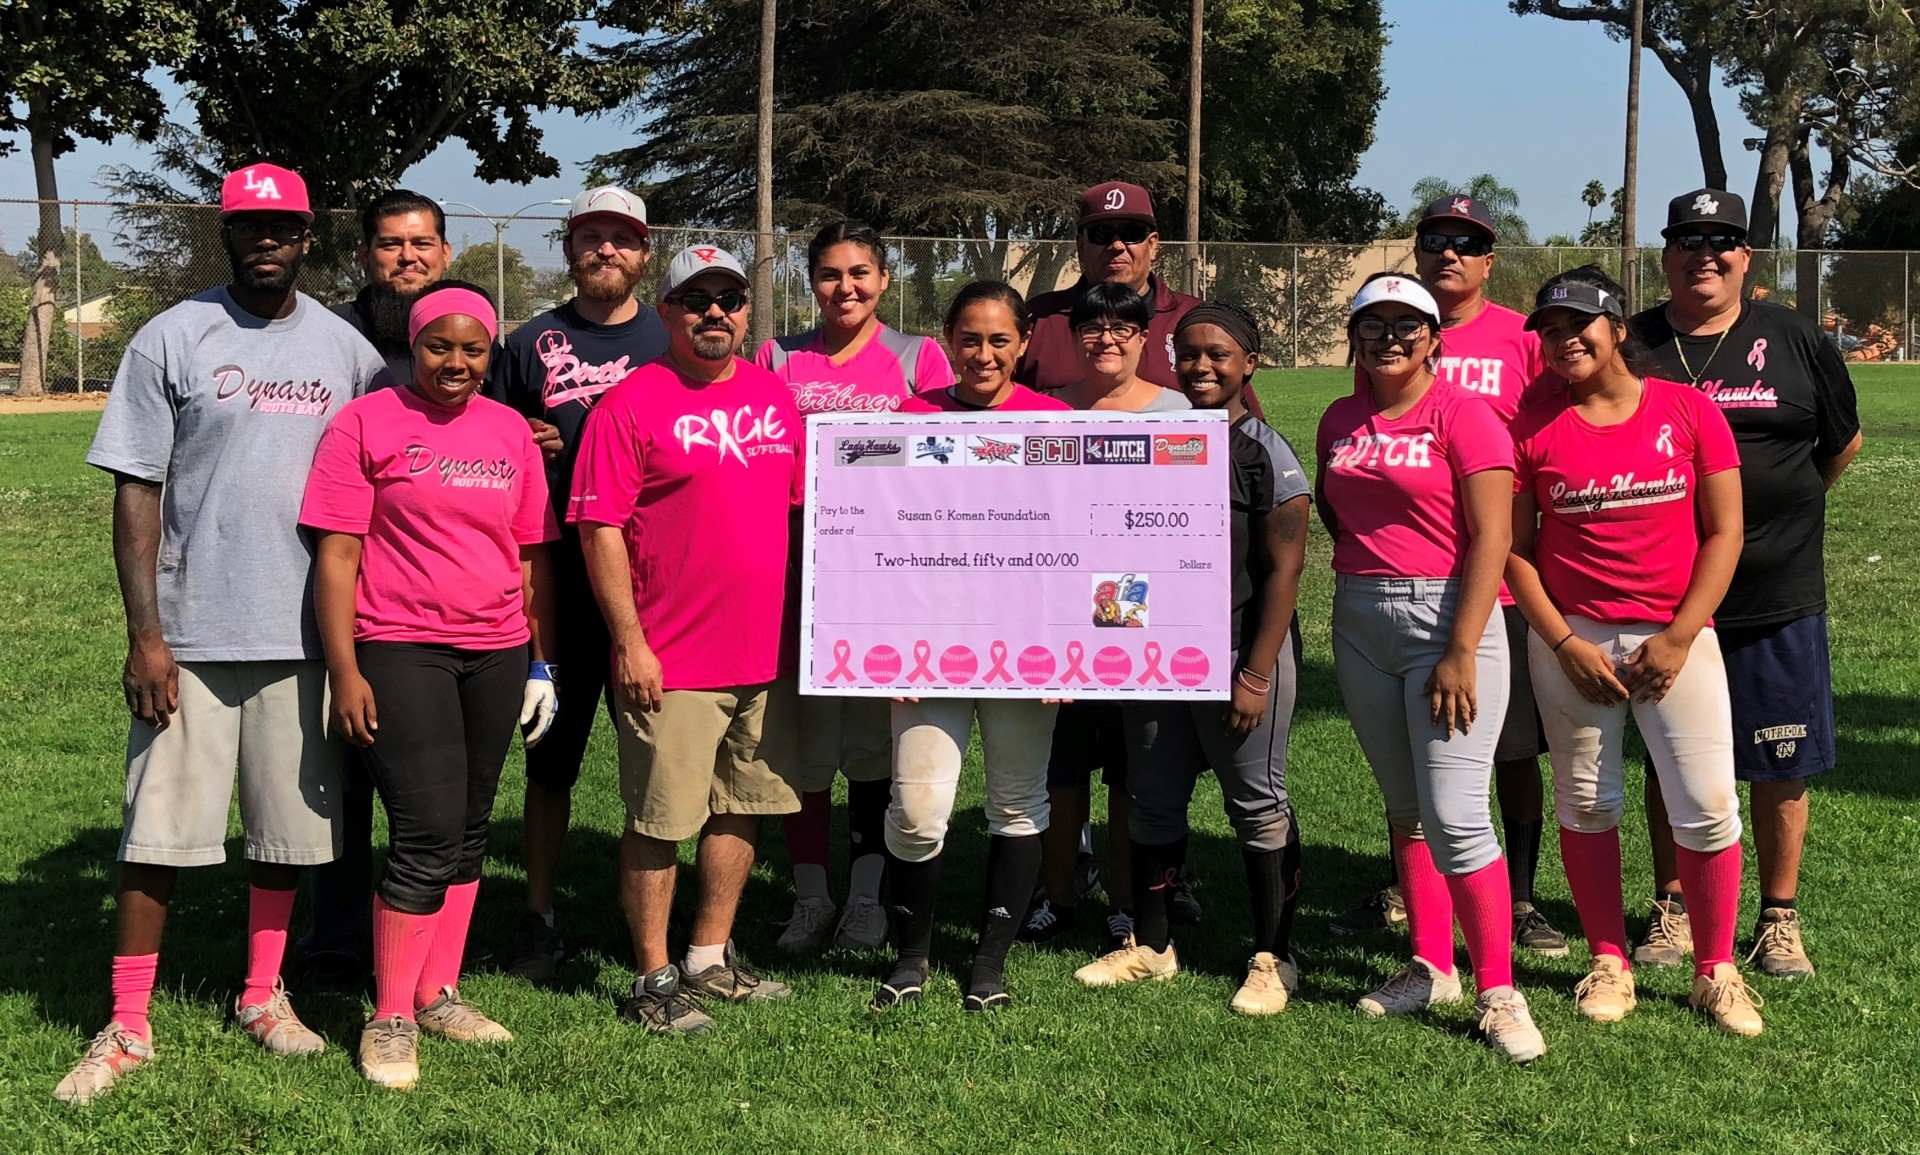 Donation Check to Susan G. Komen Foundation